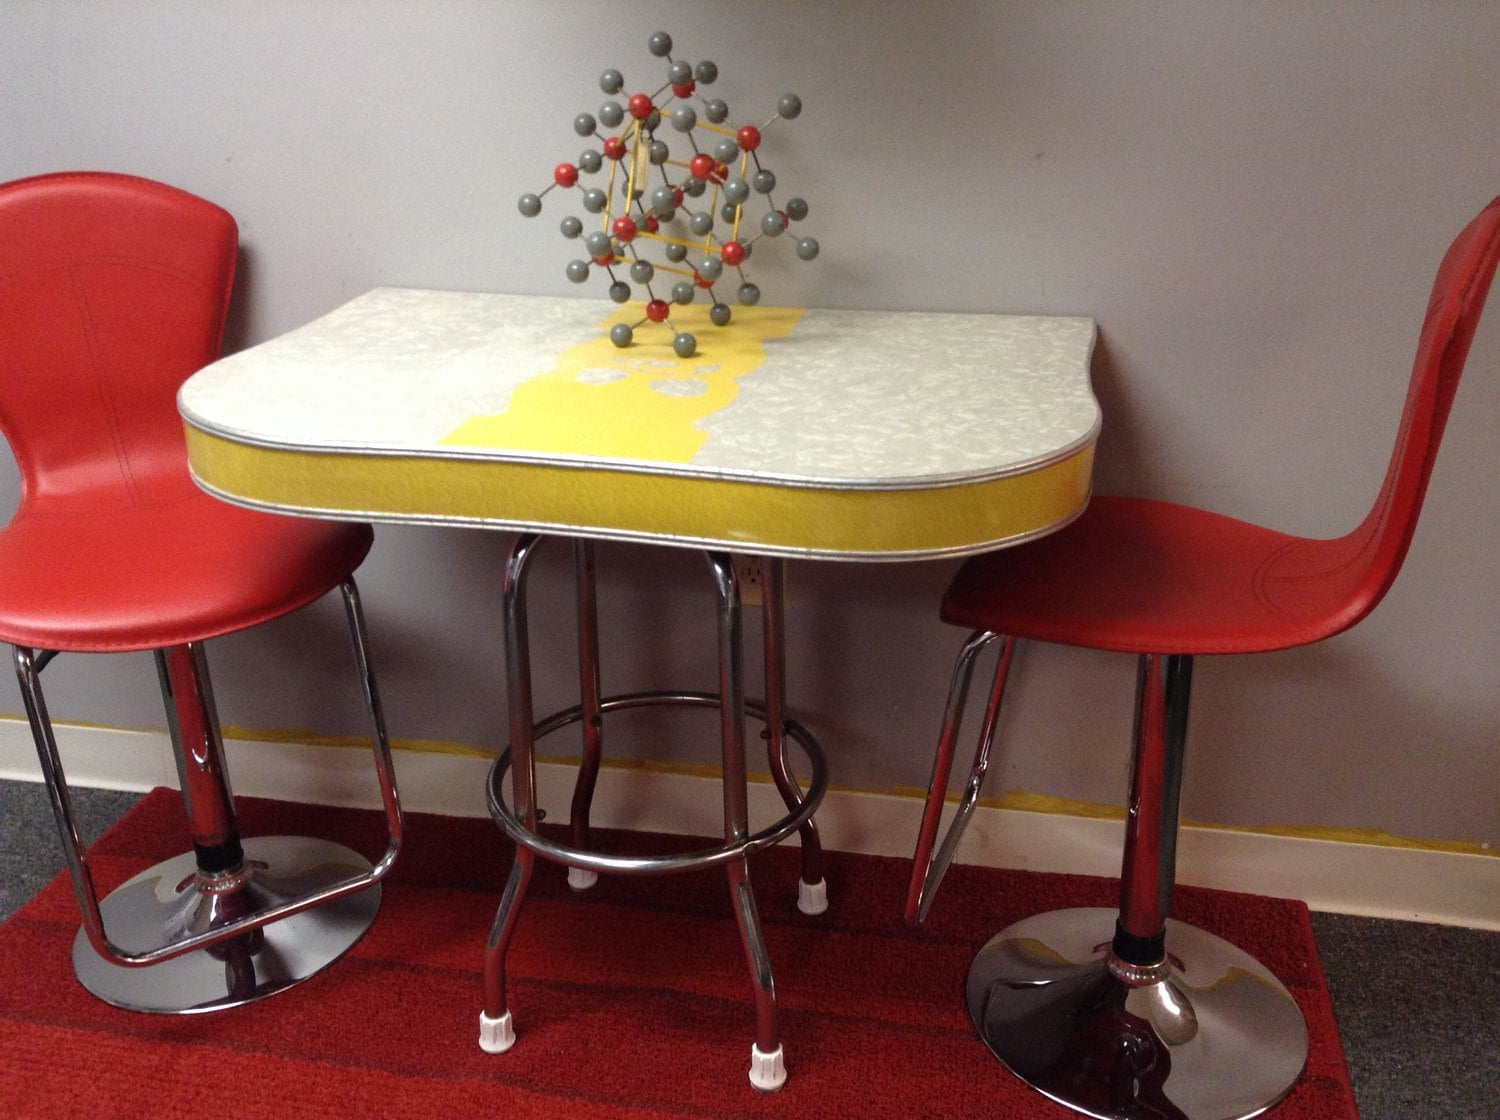 1950 s yellow formica table and chairs elmo folding chair 1940 39s grey apple motif